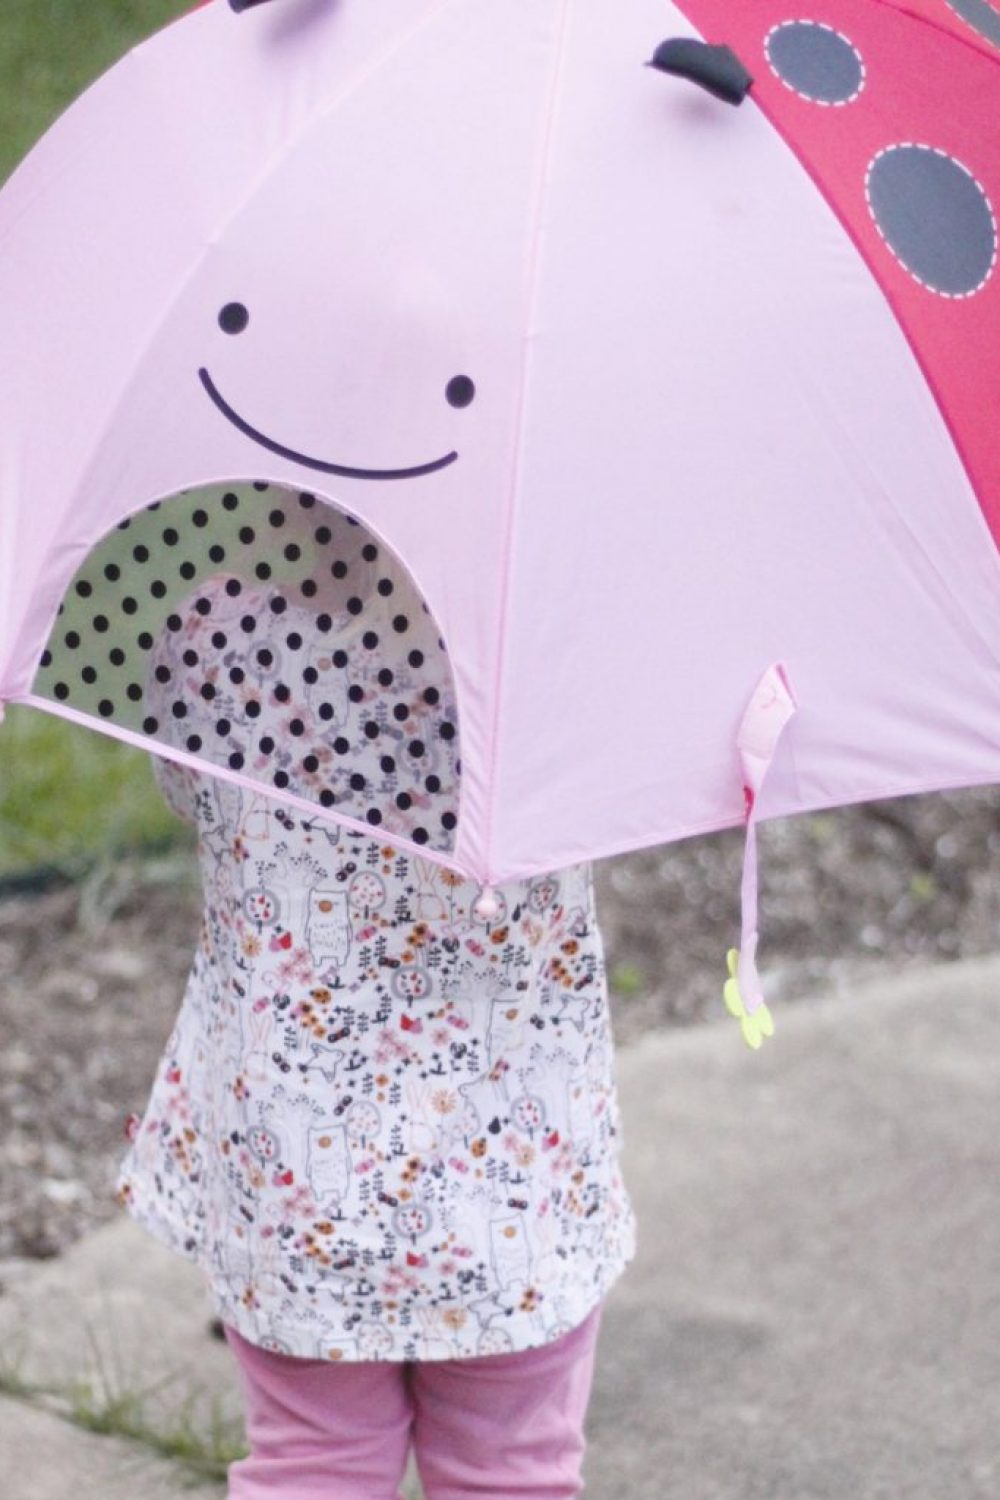 Whiny Wednesdays: Skip Hop Zoobrella Makes Rainy (or Sunny) Days Fun